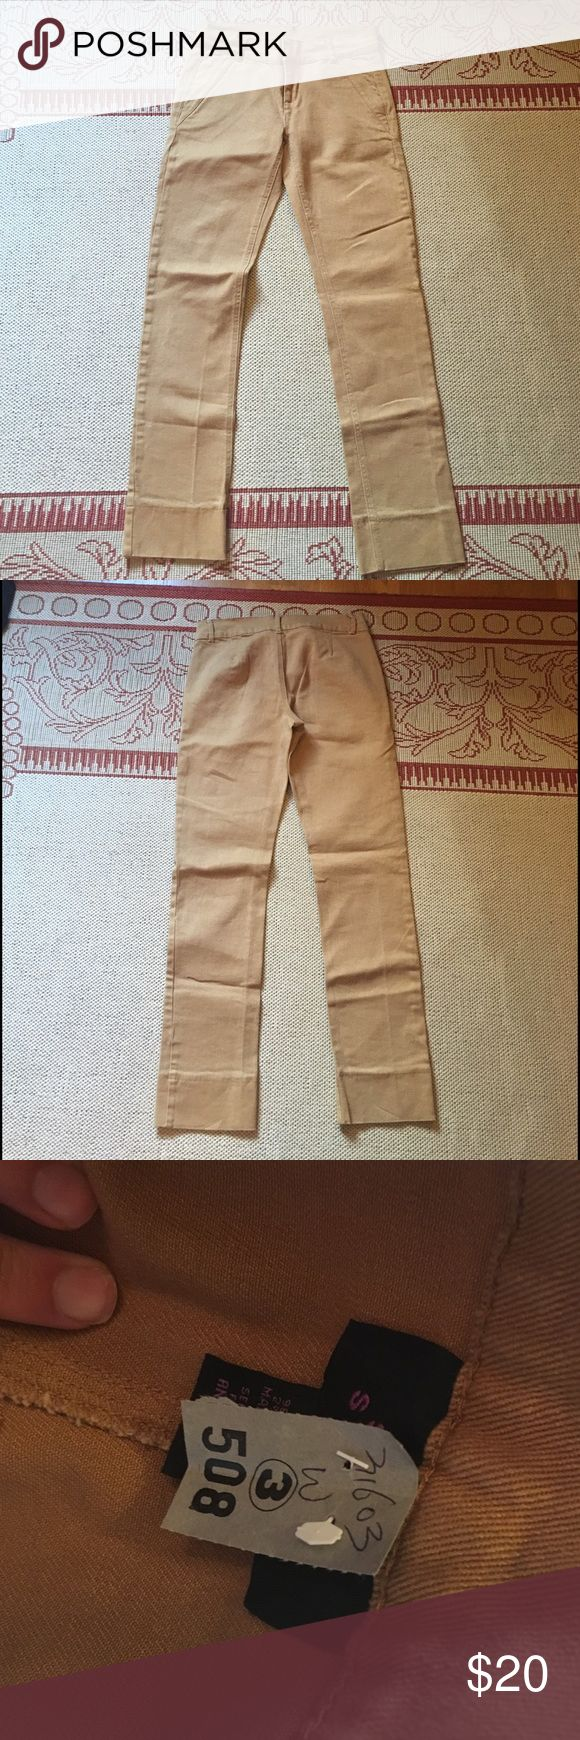 """Straight leg cognac tan jeans size 4 / 6 NWT Really cute tan straight leg jeans. Never worn, brand new. Inseam: 29.5"""", 6"""" leg opening, 14.5"""" waist. All measurements taken lying flat. Could also fit a size 6 Jeans Straight Leg"""